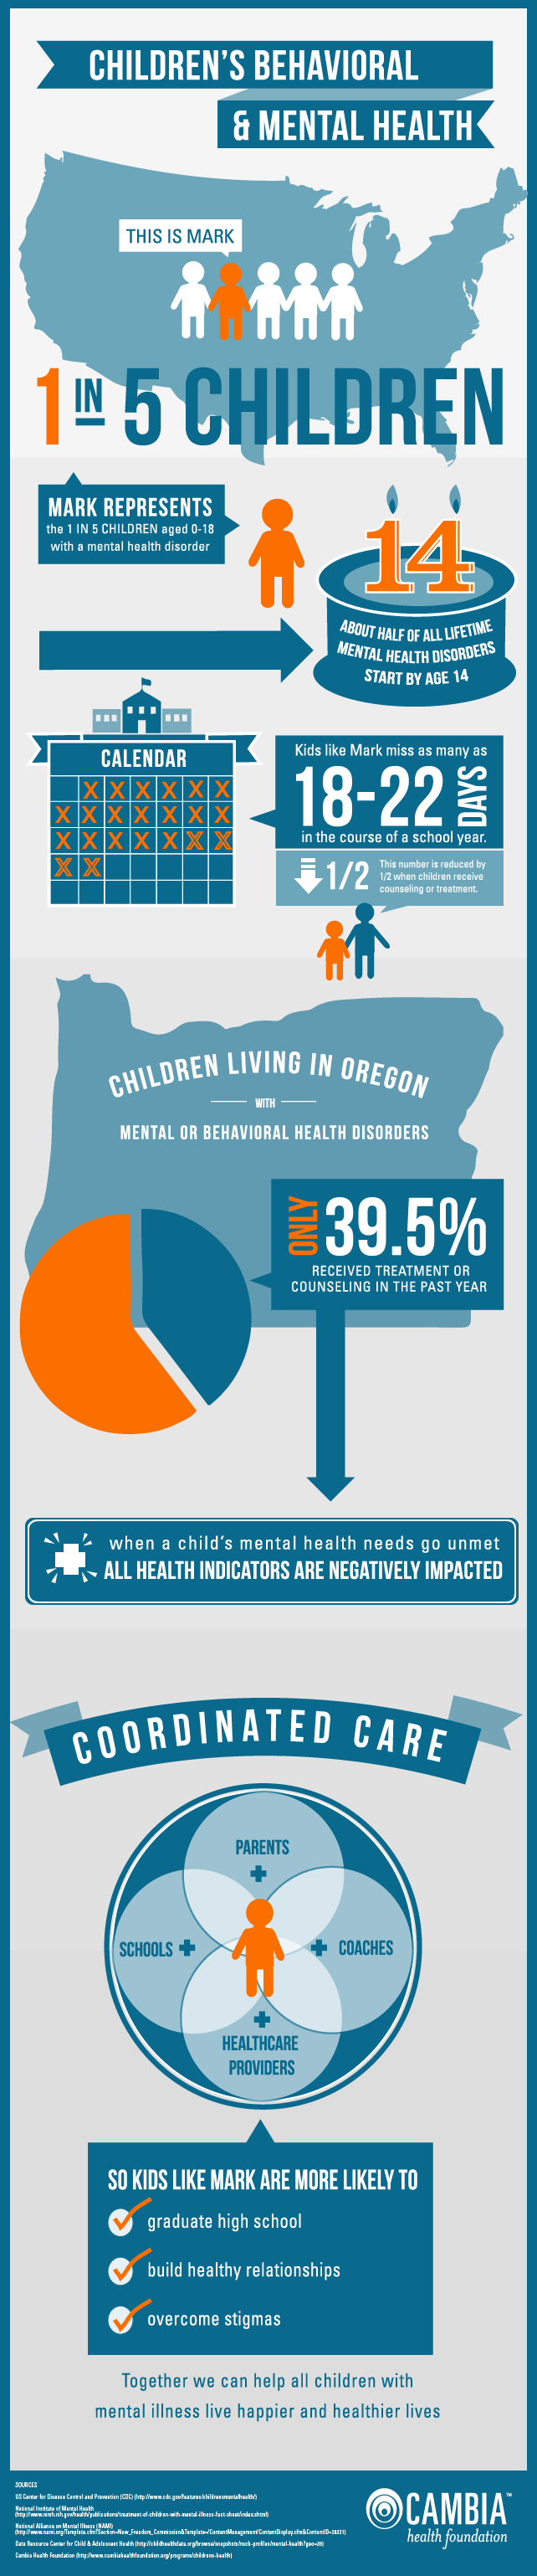 Cambia Health Foundation Infographic